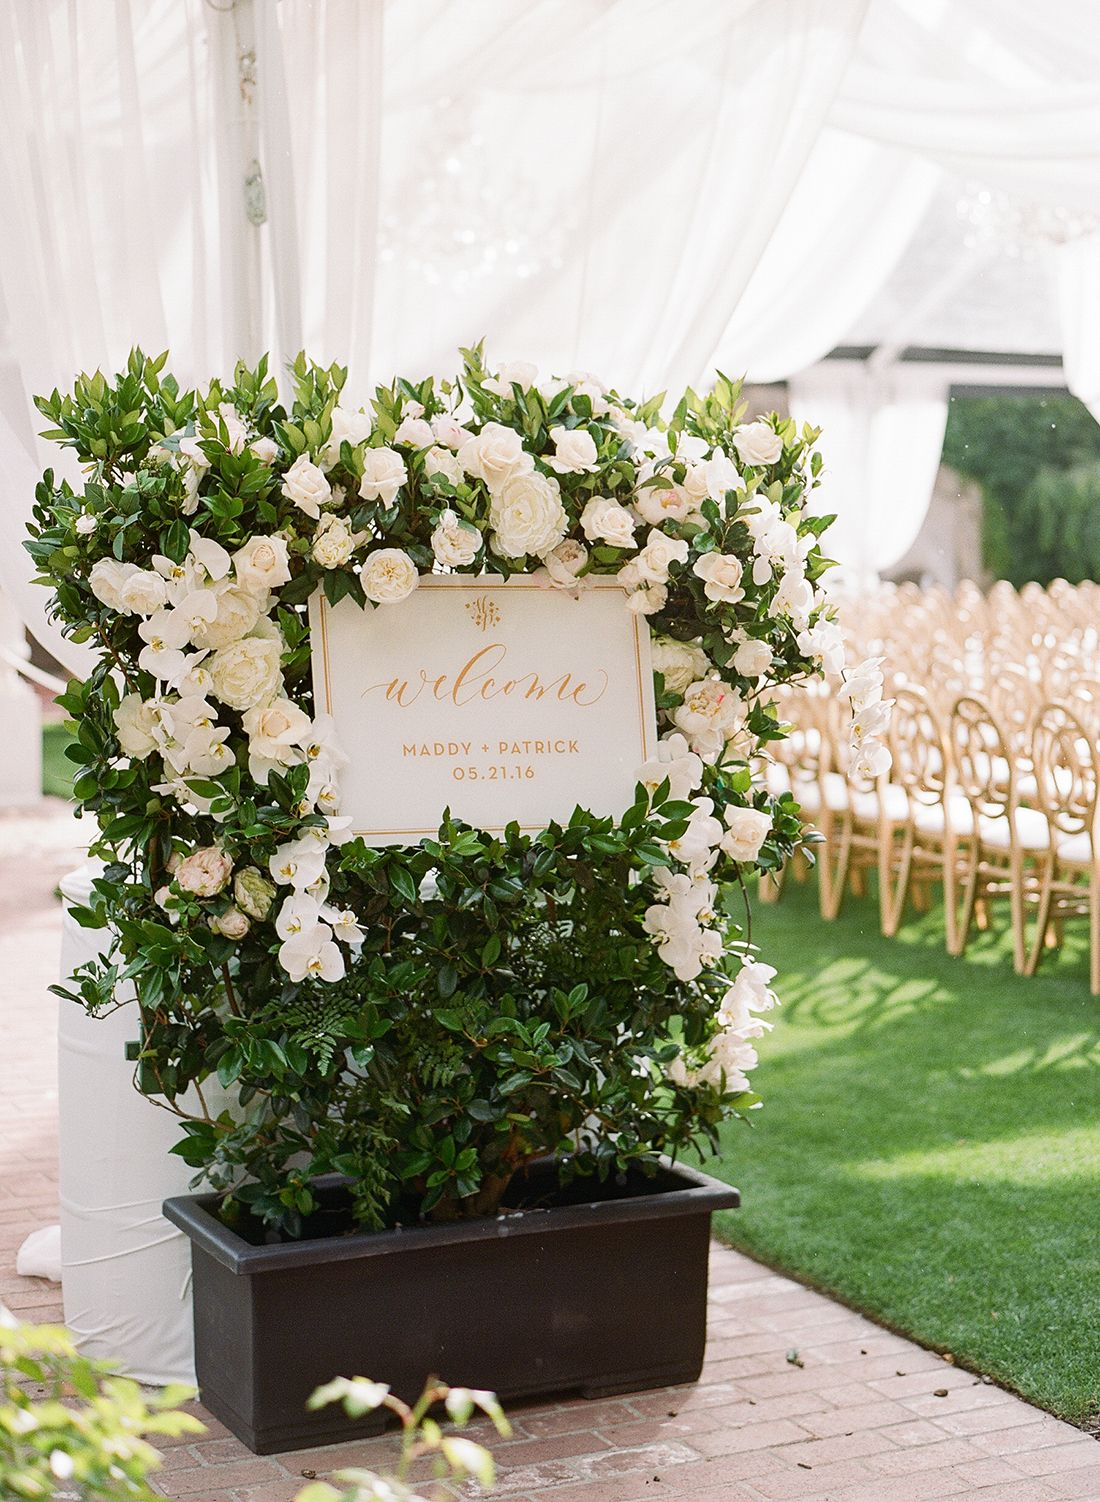 All white and gold wedding decor  Real Wedding  Maddy u Patrick  Classic Weddings  Pinterest  Real